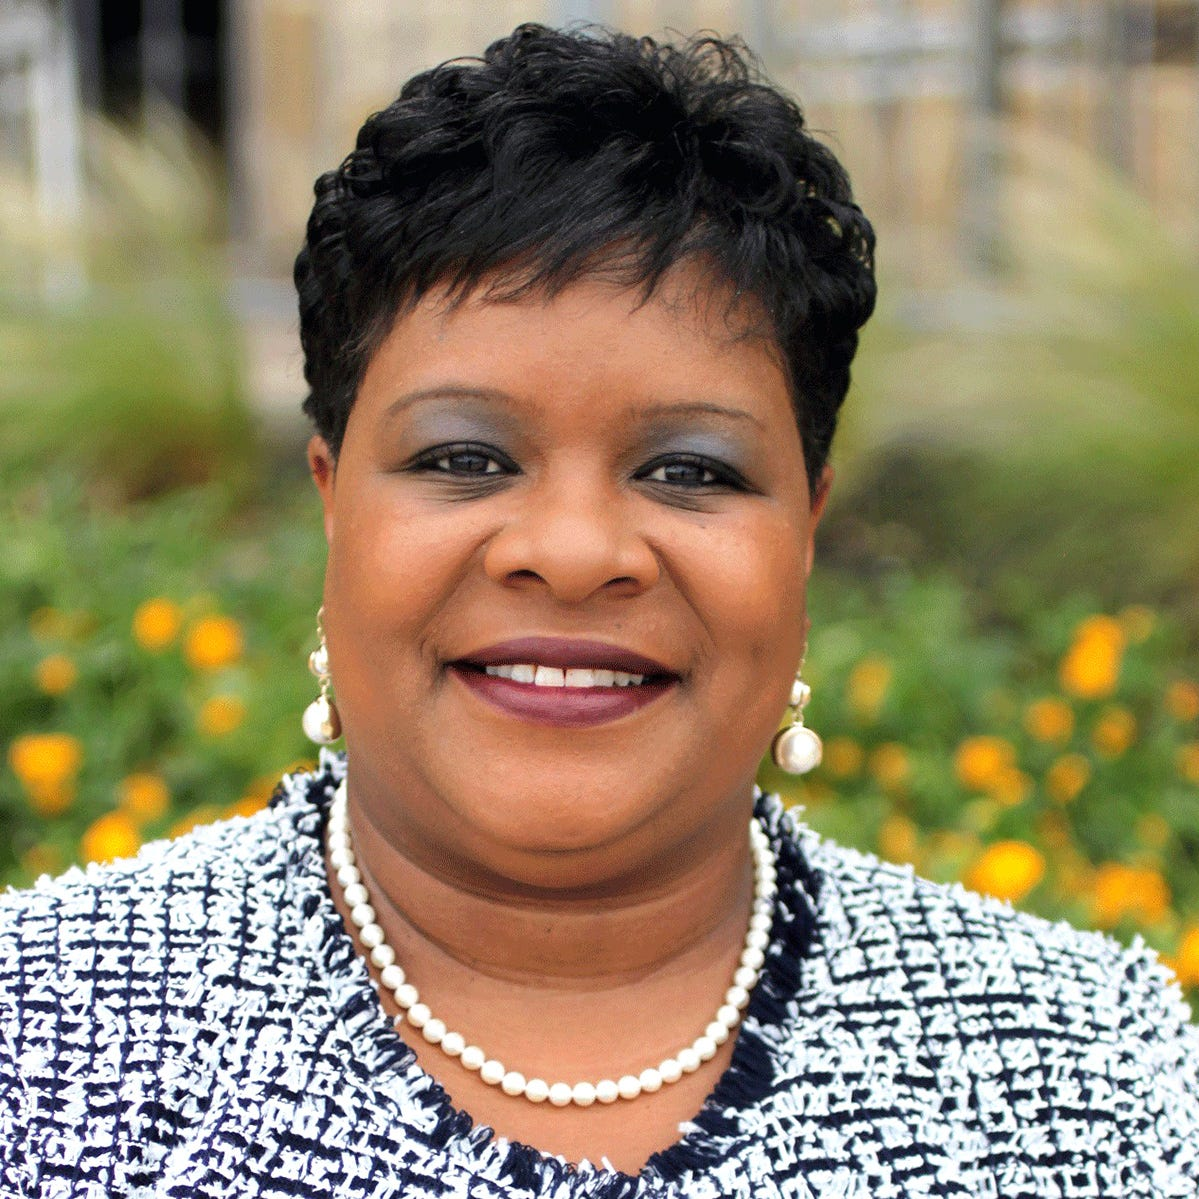 Alcorn State president search: Panel names choice